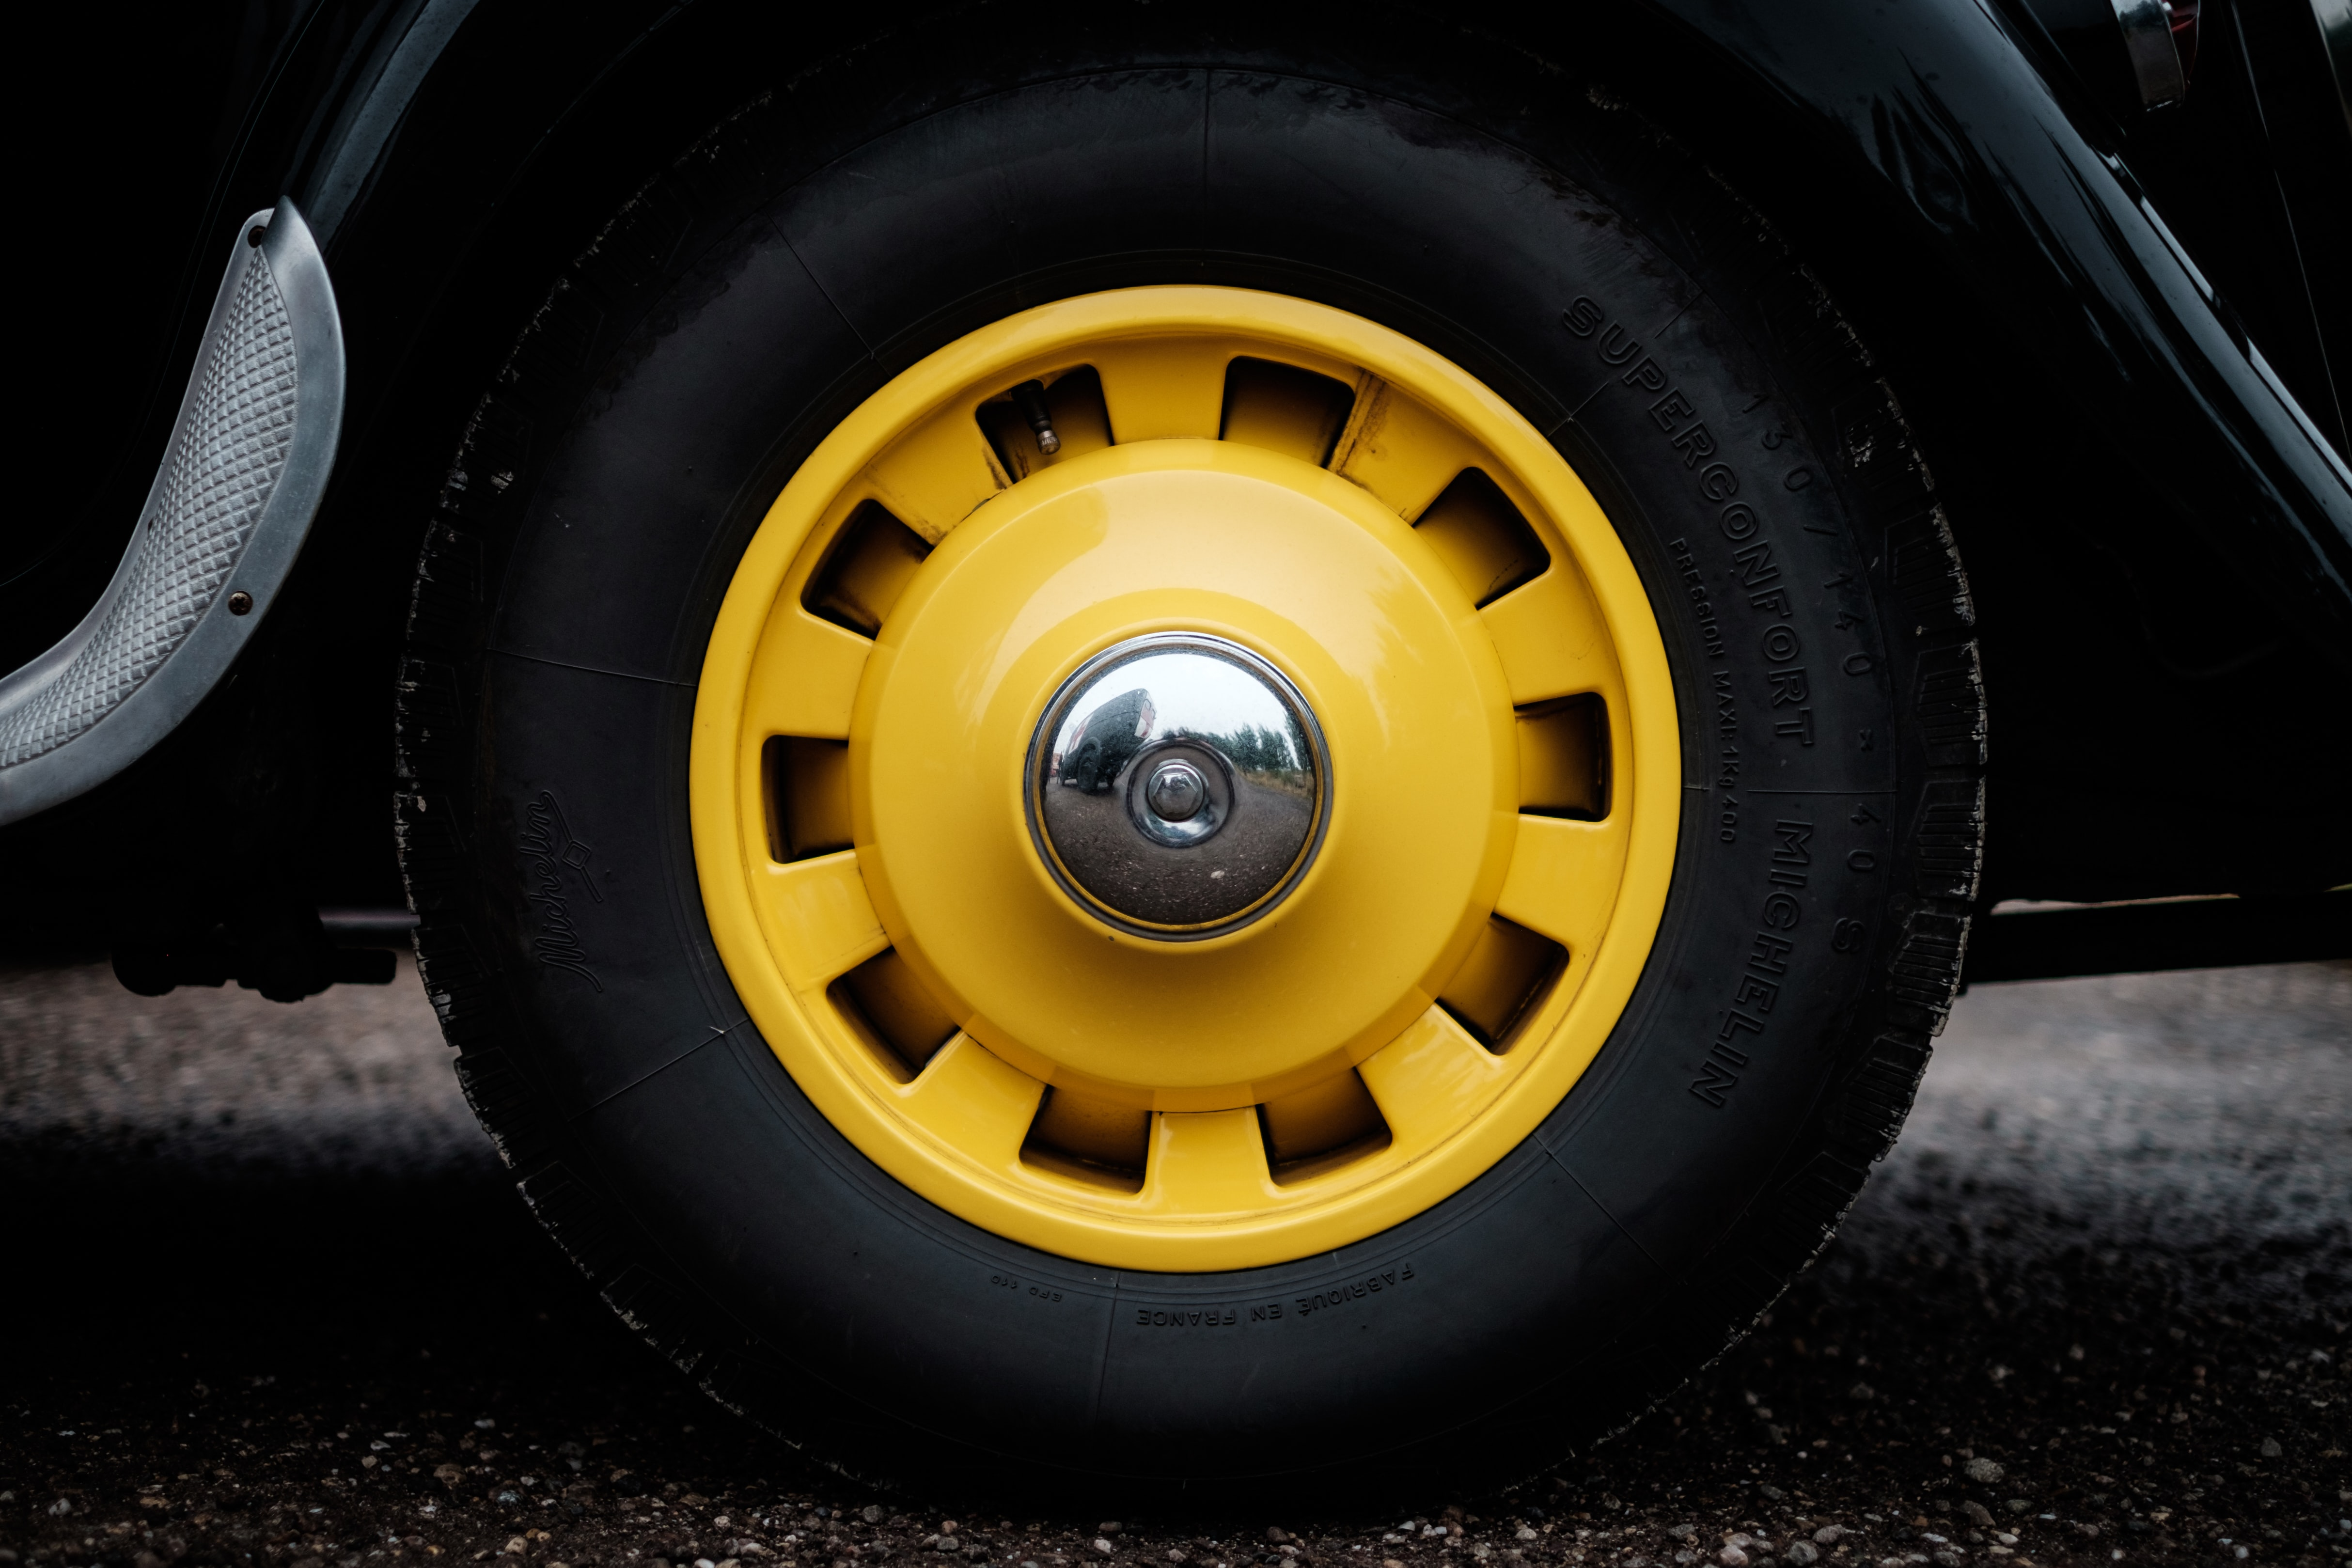 A black tire with a yellow hubcap in Colombey-les-Belles